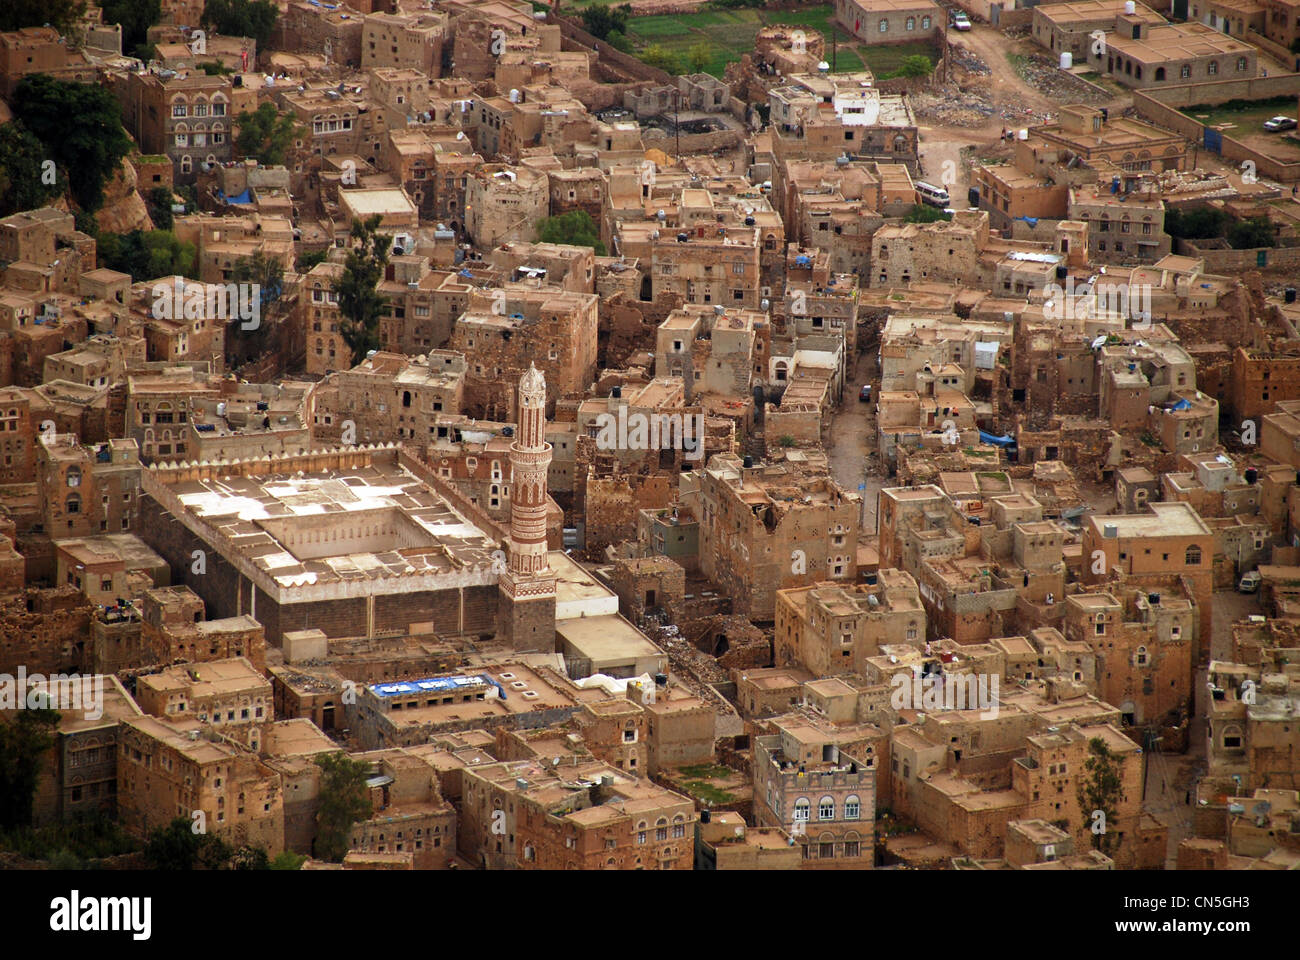 Yemen, Highlands Region, Sanaa Governorate, Kawkaban, elevated view of congested residential houses trees in background - Stock Image